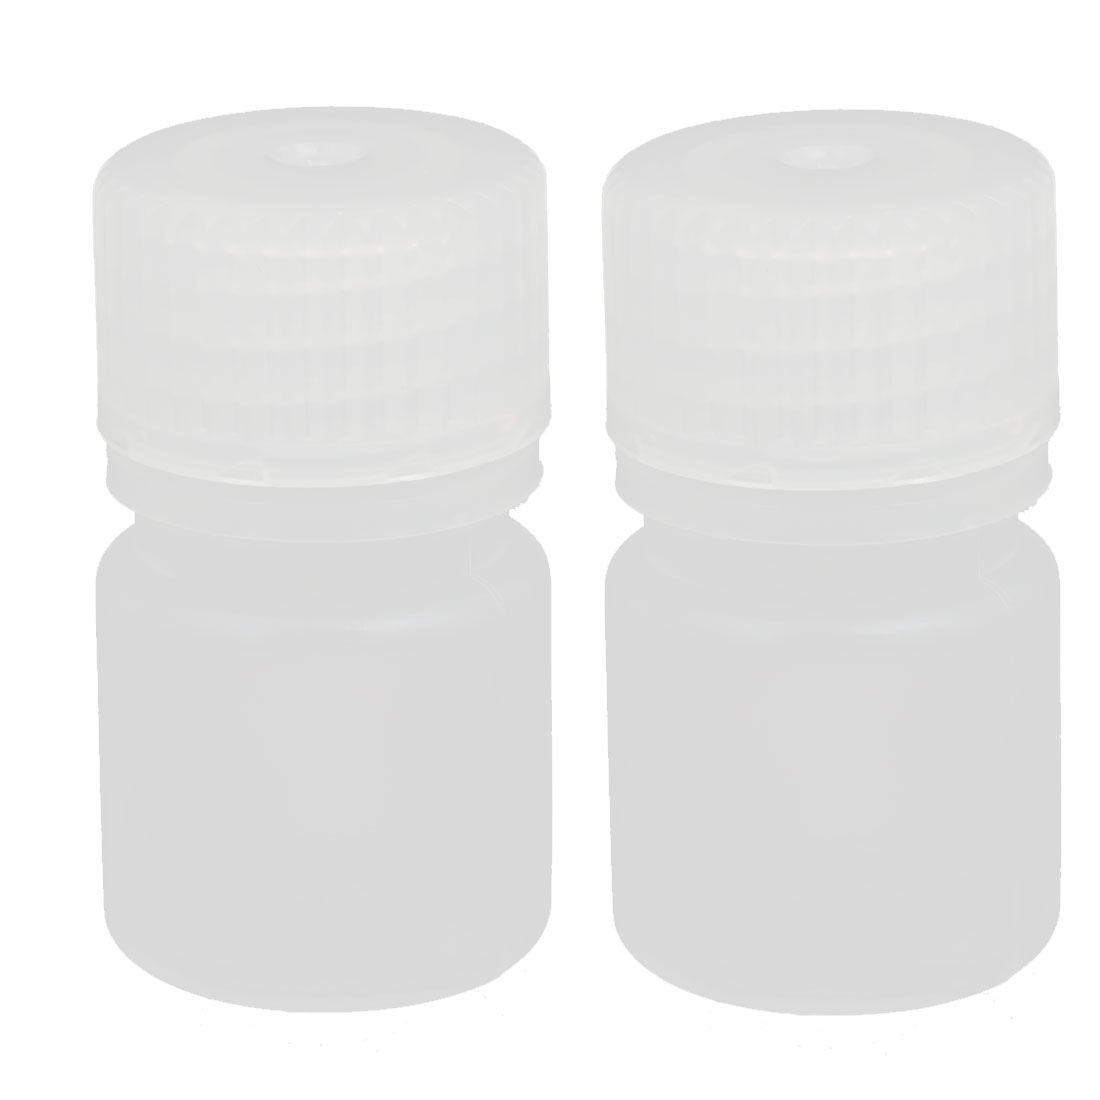 5ml PP Plastic Round Shaped Narrow Mouth Bottle Clear 2pcs